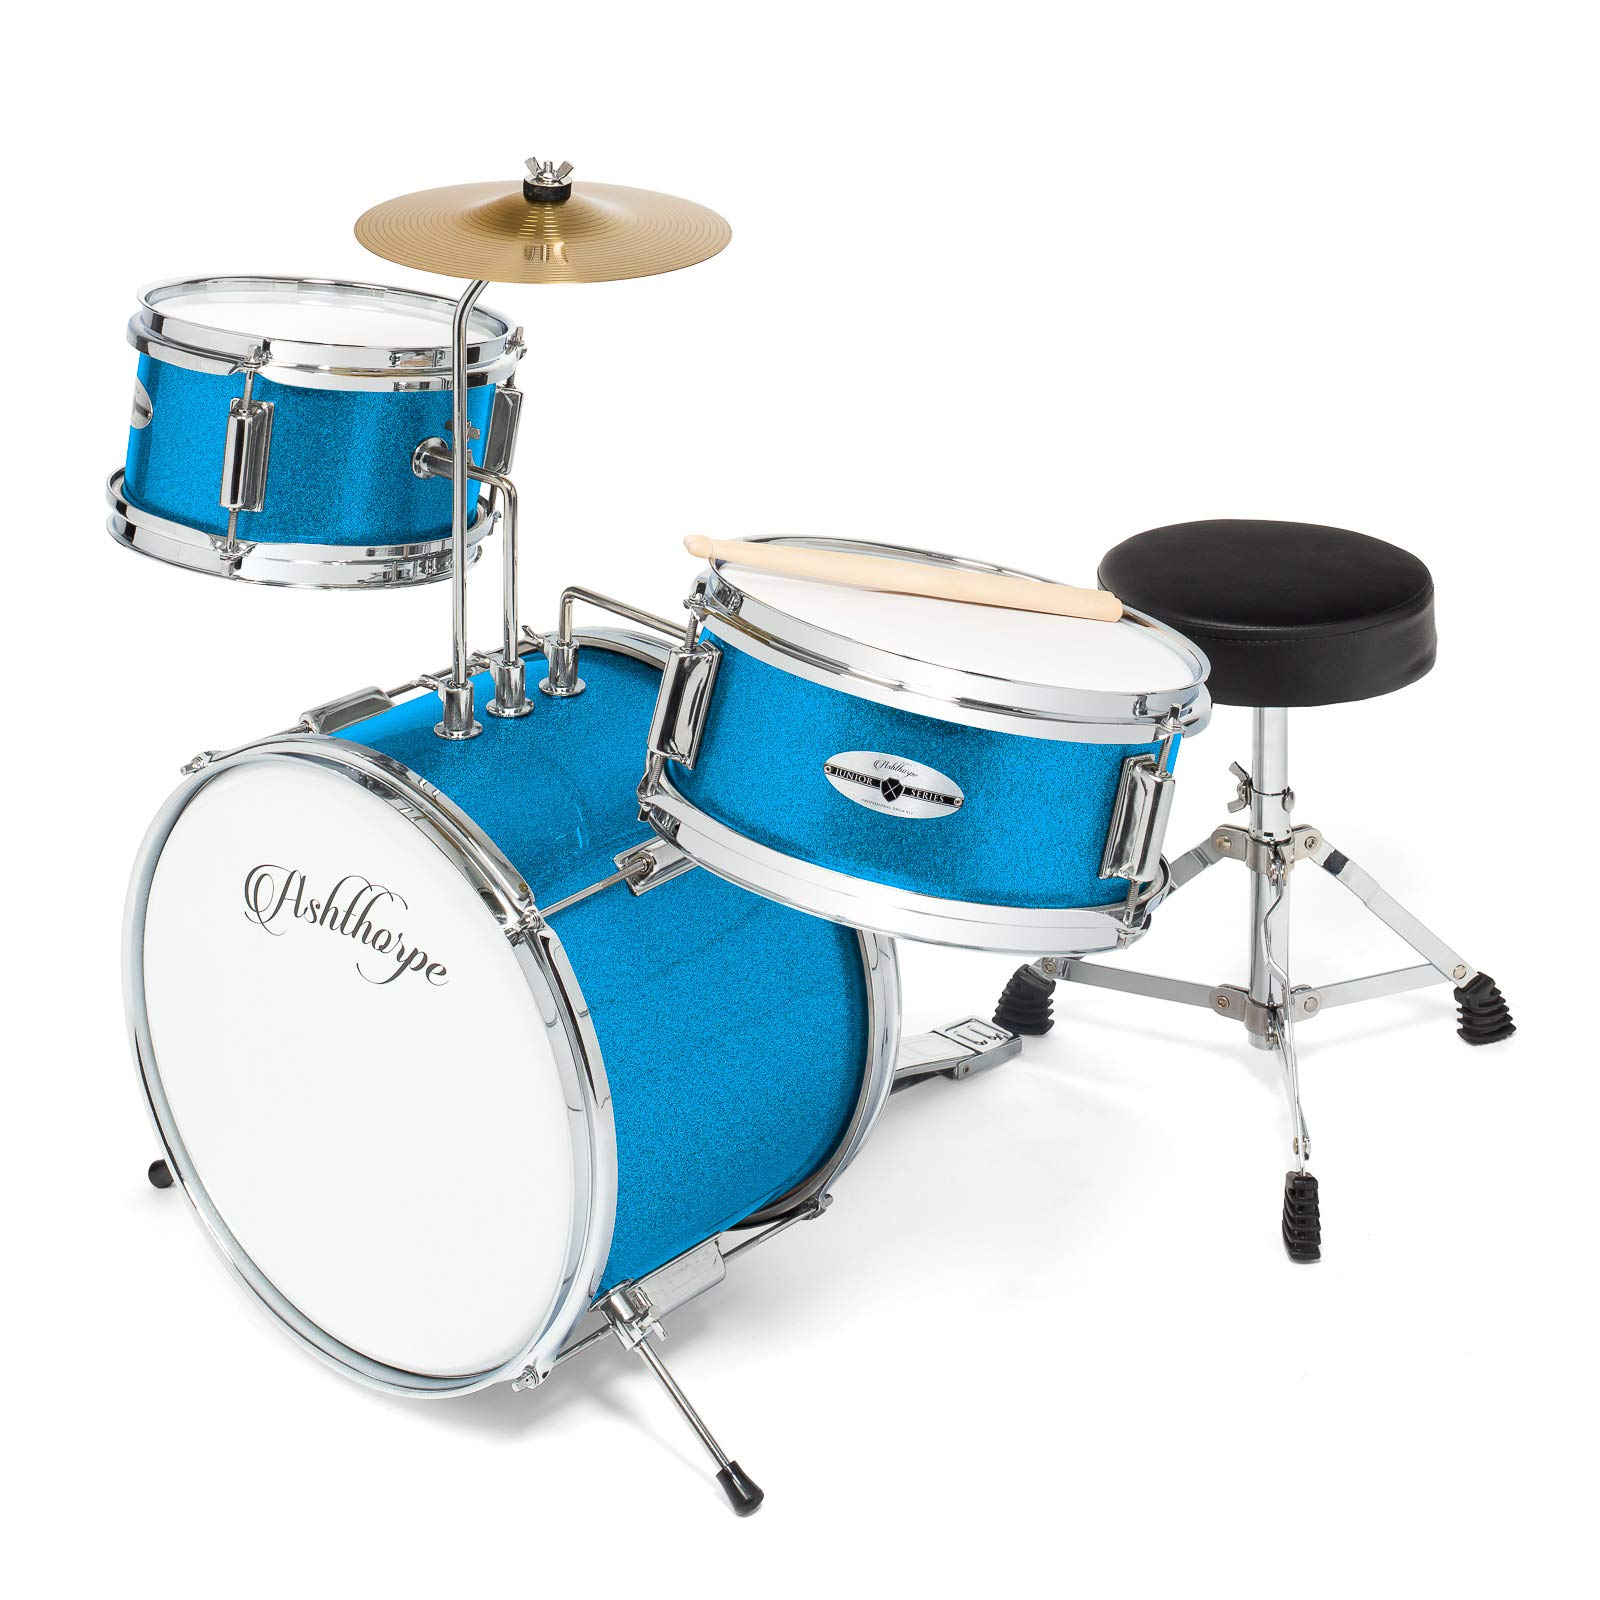 Ashthorpe 3-Piece Complete Kid's Junior Drum Set - Children's Beginner Kit with 14'' Bass, Adjustable Throne, Cymbal, Pedal & Drumsticks - Blue by Ashthorpe (Image #1)